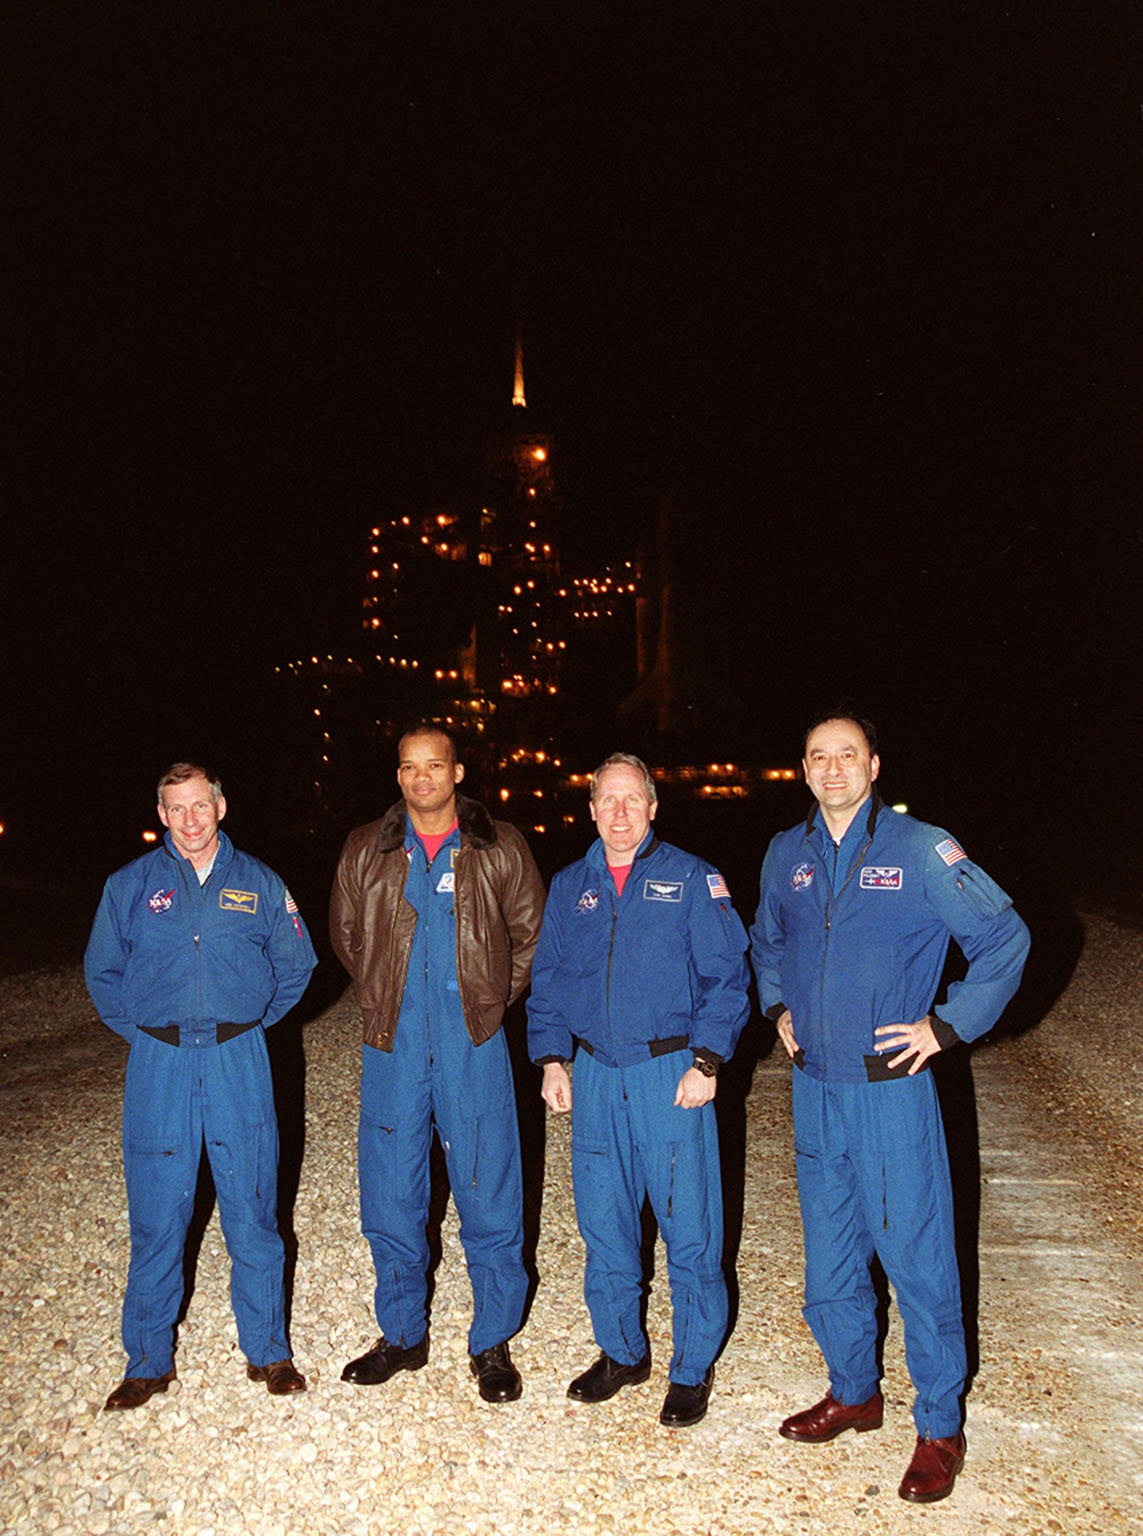 Members of the STS-98 crew pause for a photo after their arrival at KSC. From left, they are Commander Ken Cockrell, Mission Specialists Robert Curbeam and Thomas Jones, and Pilot Mark Polansky. Missing is Mission Specialist Marsha Ivins who was planning to arrive later. The crew is at KSC to take part in Terminal Countdown Test Demonstration activities in preparation for launch. They will be training in emergency procedures from the pad, checking the payload and taking part in a simulated countdown. The payload for the mission is the U.S. Lab Destiny, a key element in the construction of the International Space Station. The lab has five system racks already installed inside the module. After delivery of electronics in the lab, electrically powered attitude control for Control Moment Gyroscopes will be activated. STS-98 is the seventh construction flight to the ISS